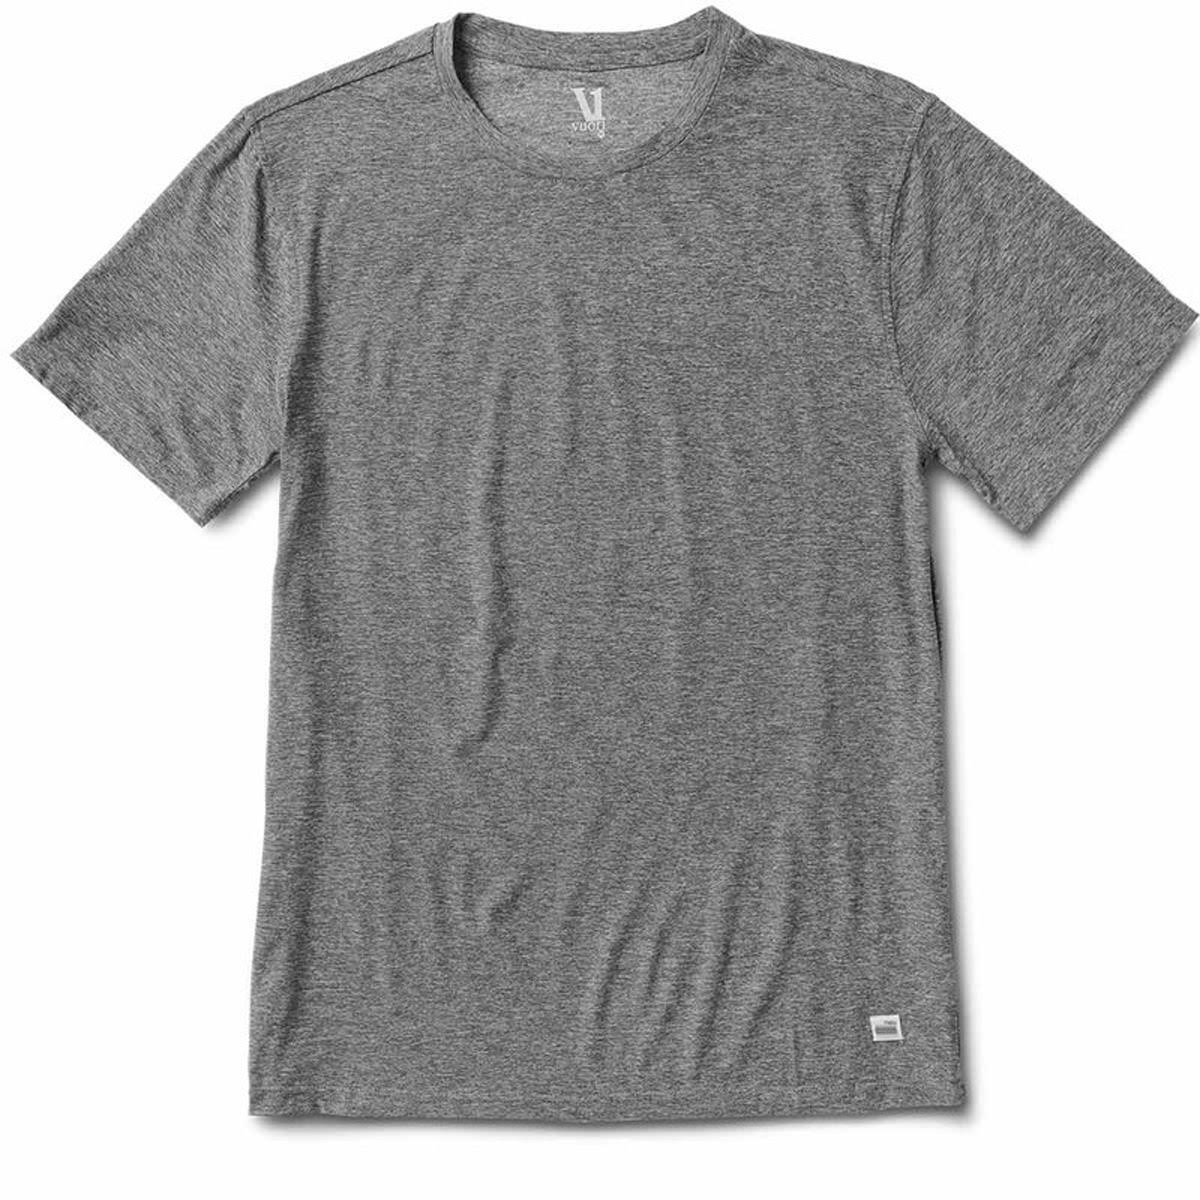 Vuori Men's Heather Grey Strato Tech Tee - L